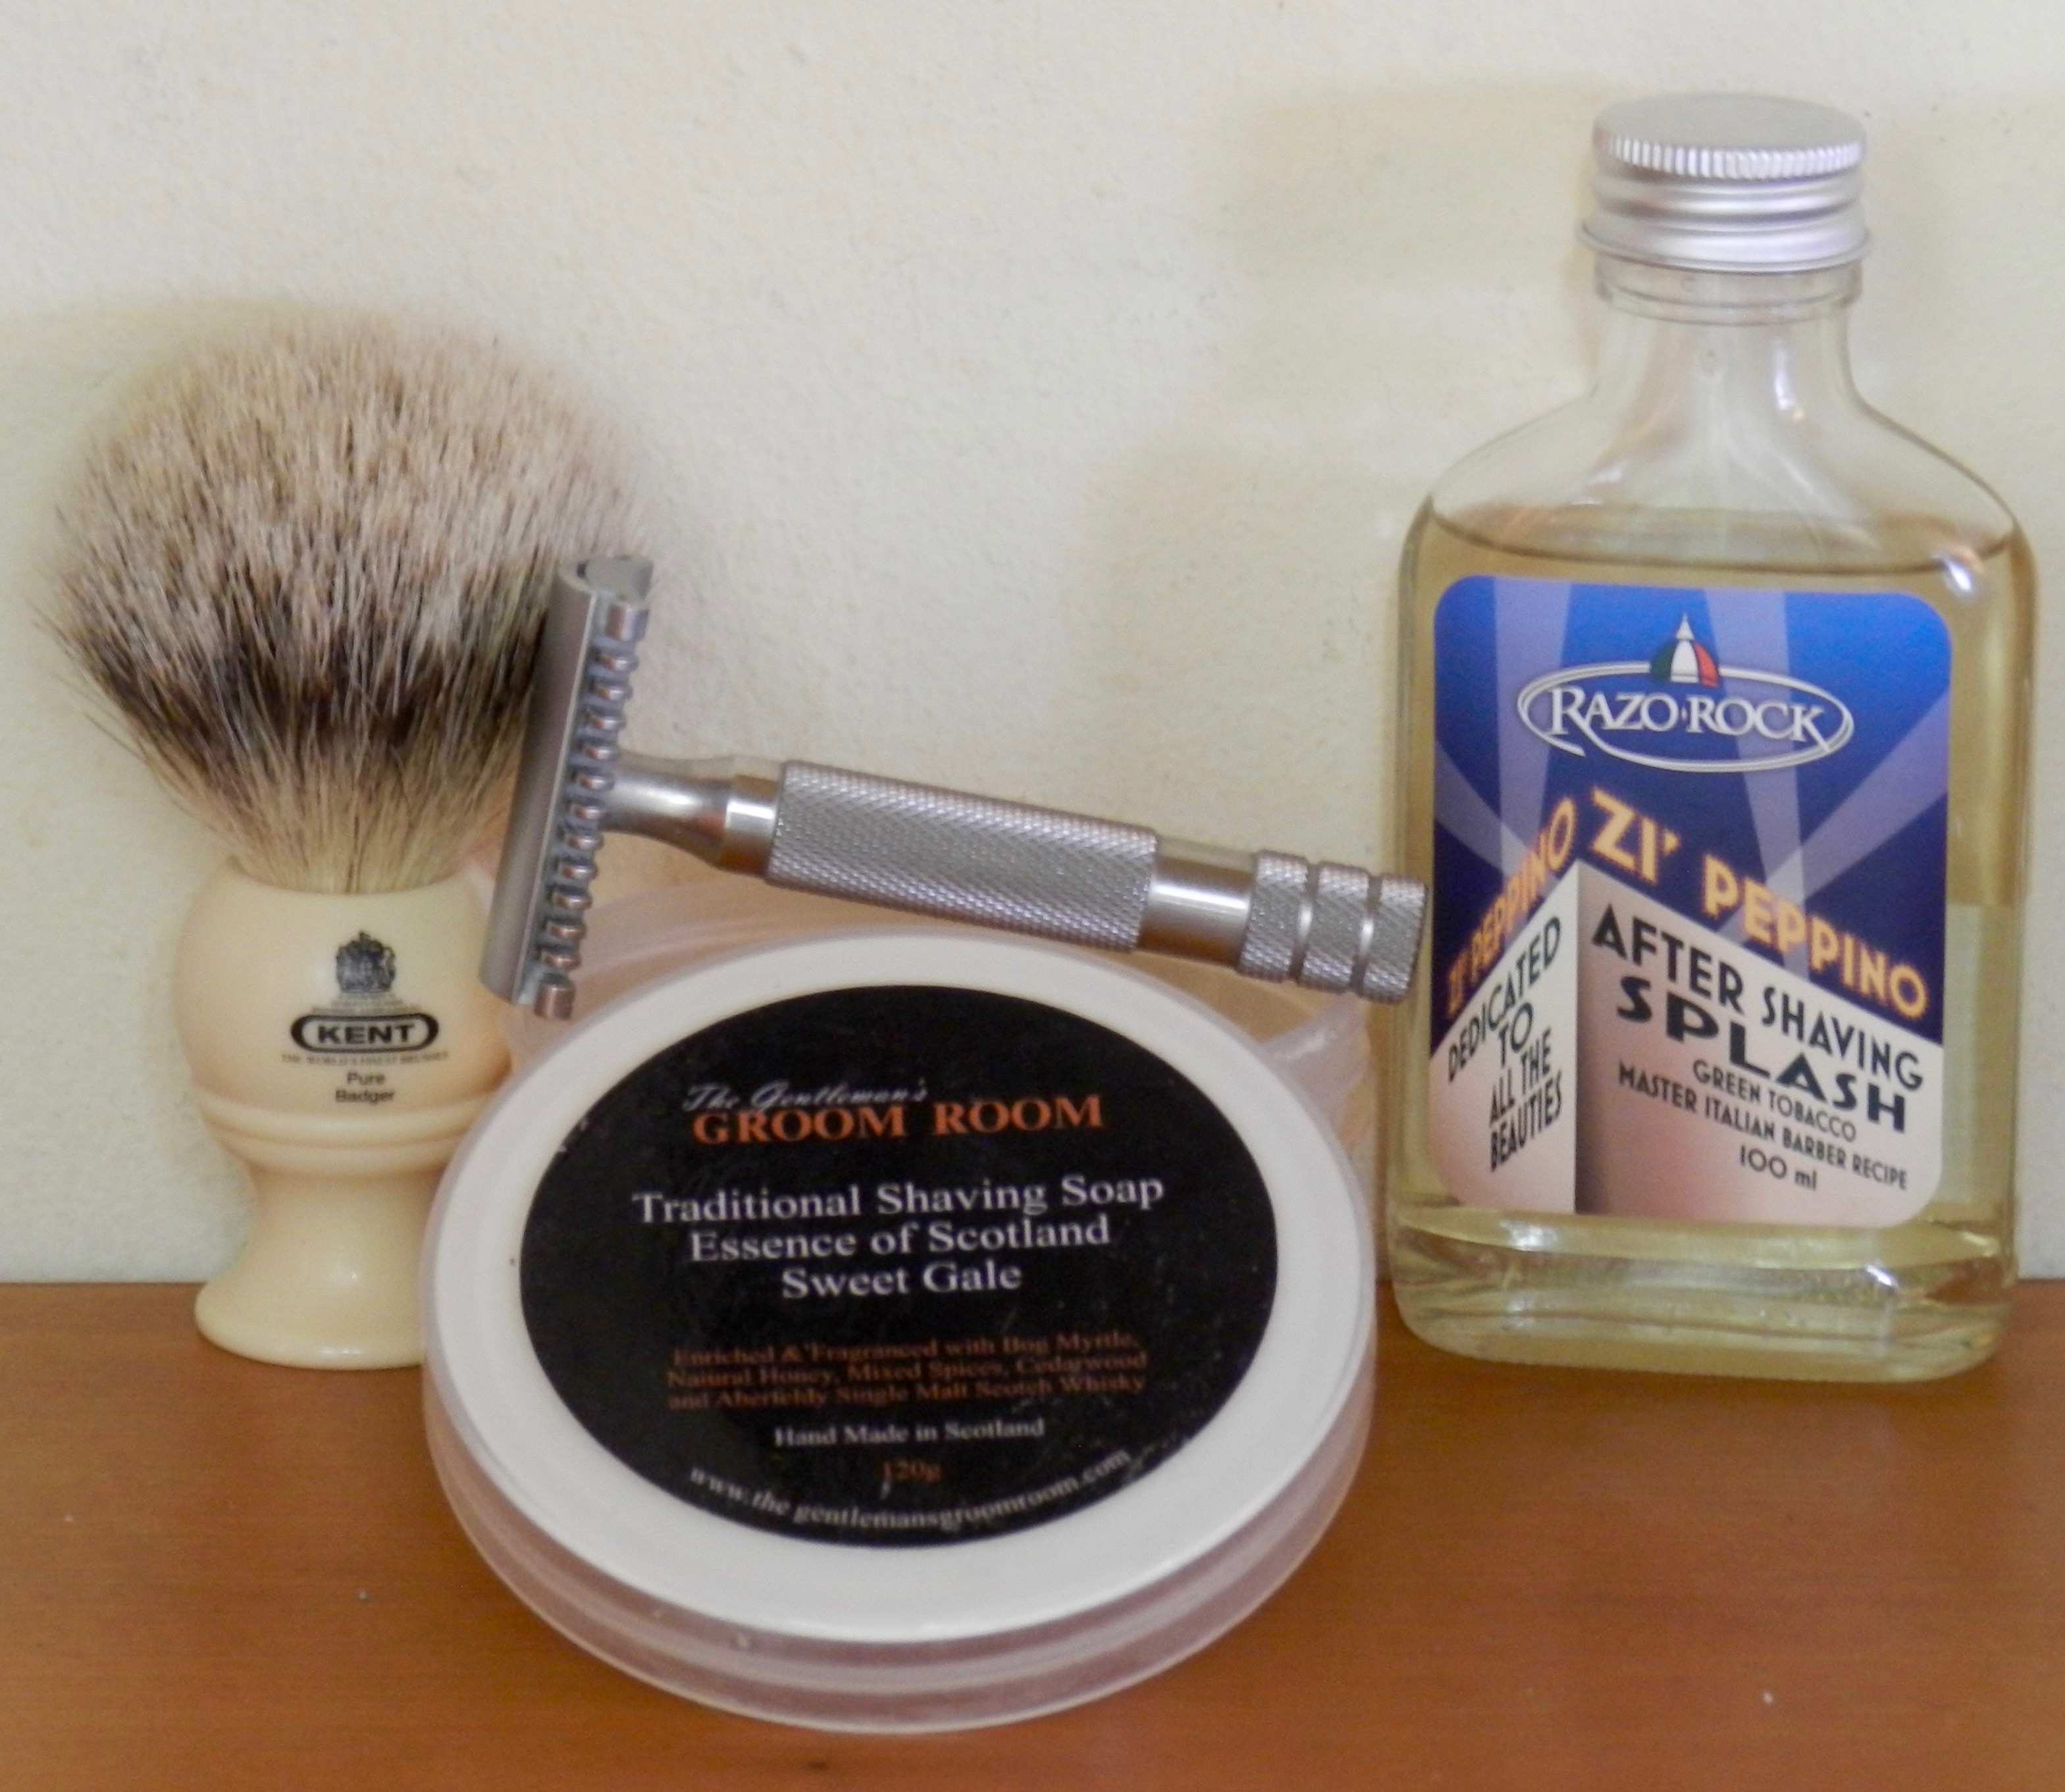 G B  Kent BK4, Sweet Gale, iKon 101, and RazoRock Zi